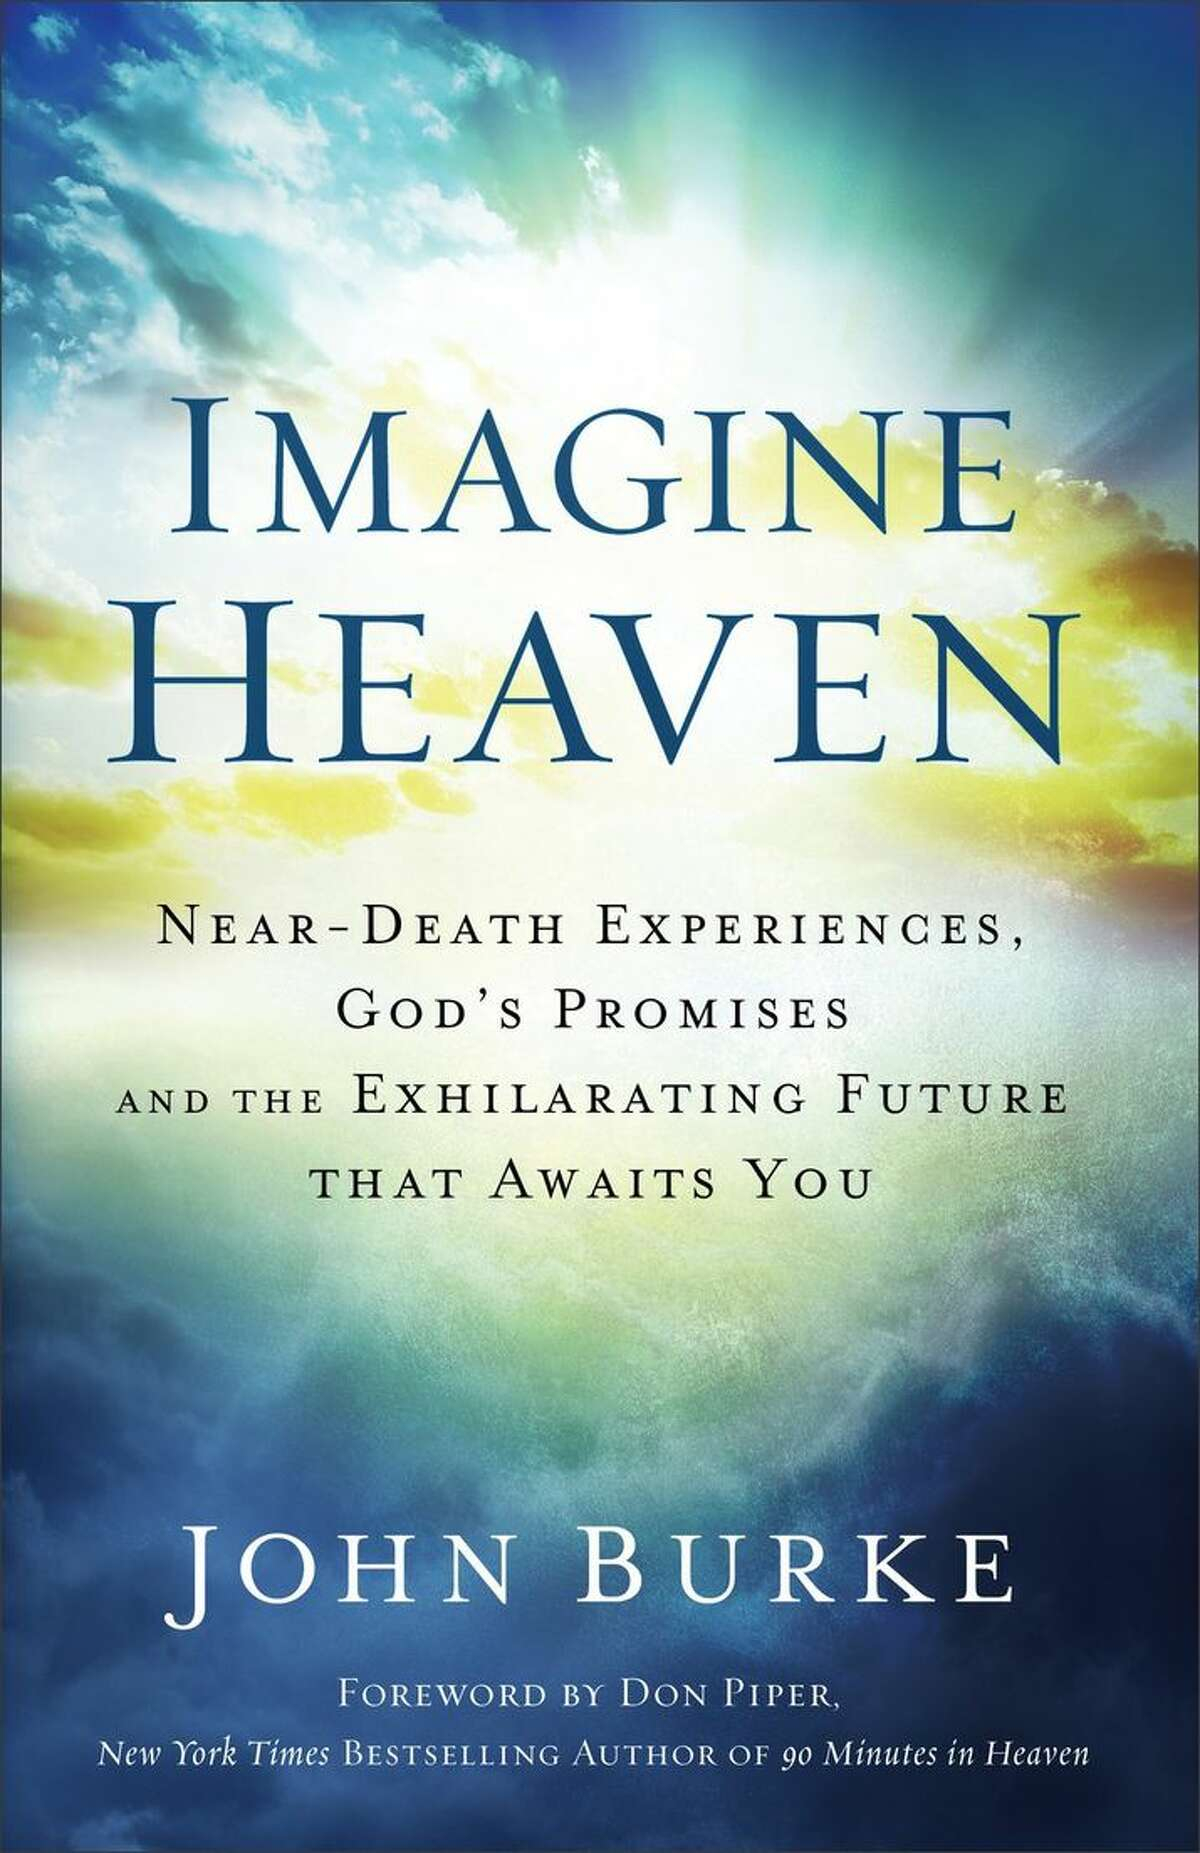 """""""Imagine Heaven: Near-Death Experiences, God's Promises, and the Exhilarating Future That Awaits You"""" by John Burke (Baker Publishing Group, $15, 352 pages)"""